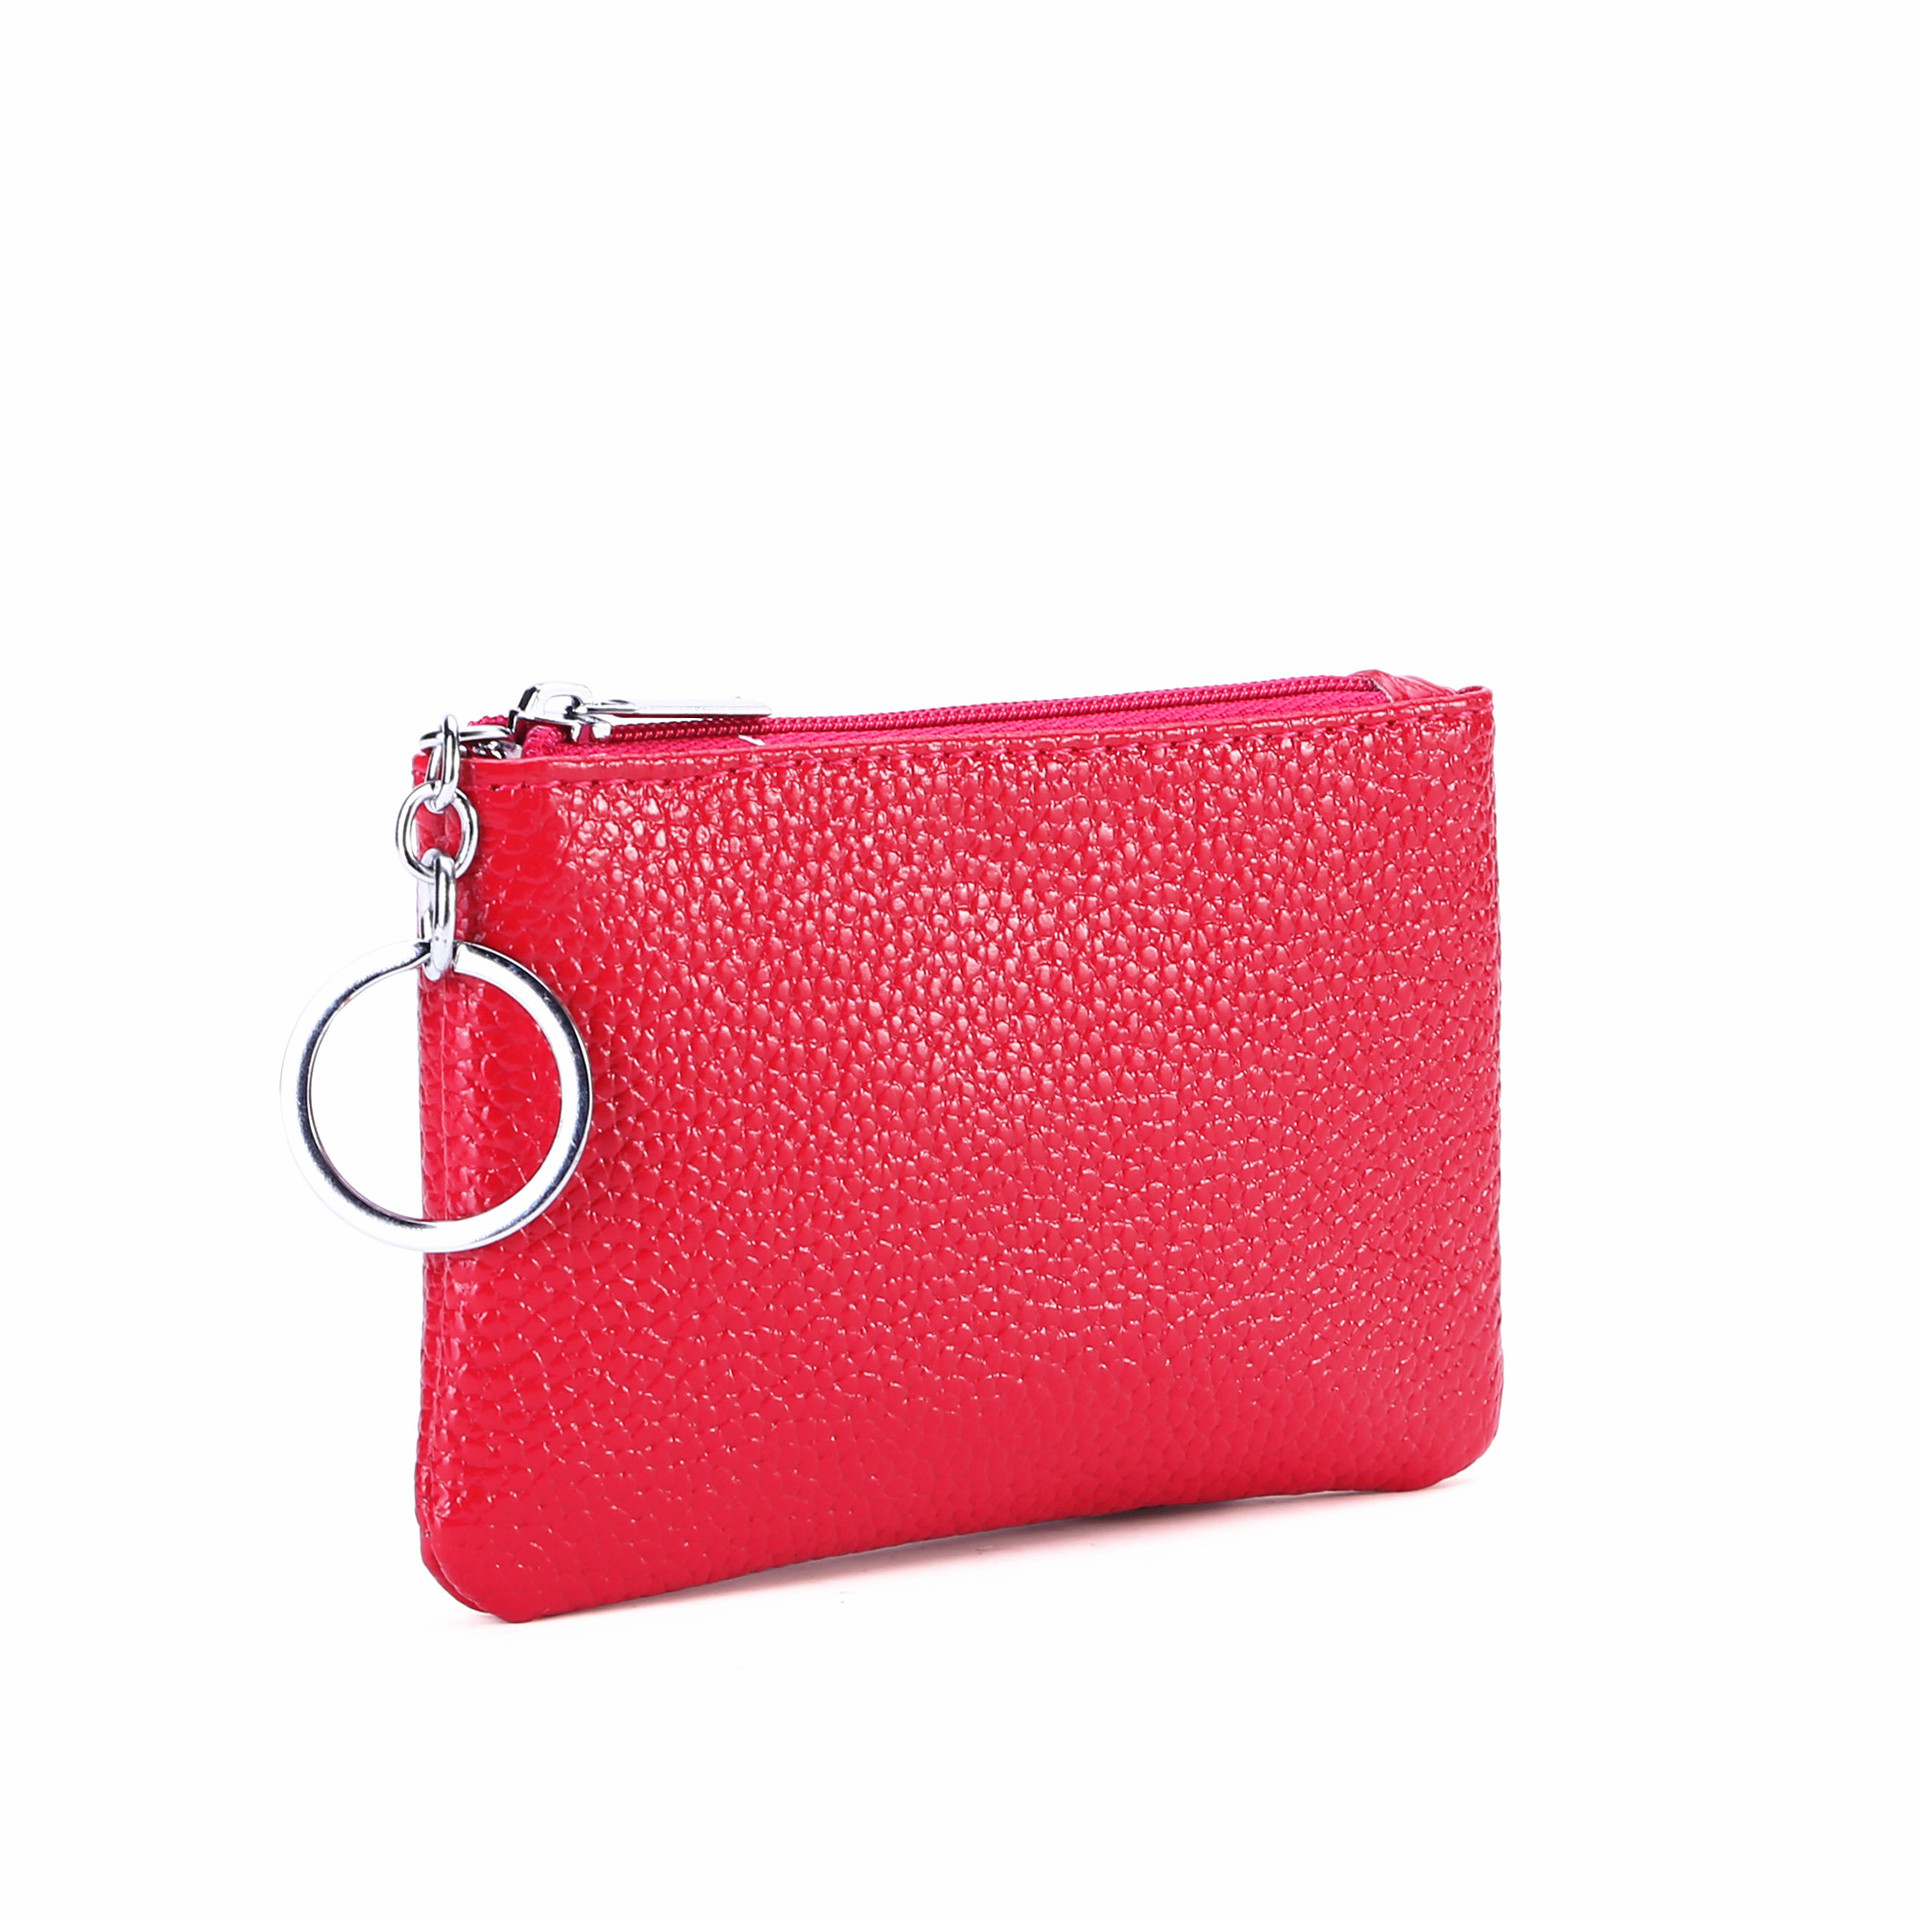 Genuine Leather Wallet for Women and Men Coin Purse Mini Keychains Small Real   Wallets with Key Ring Top QualityGenuine Leather Wallet for Women and Men Coin Purse Mini Keychains Small Real   Wallets with Key Ring Top Quality